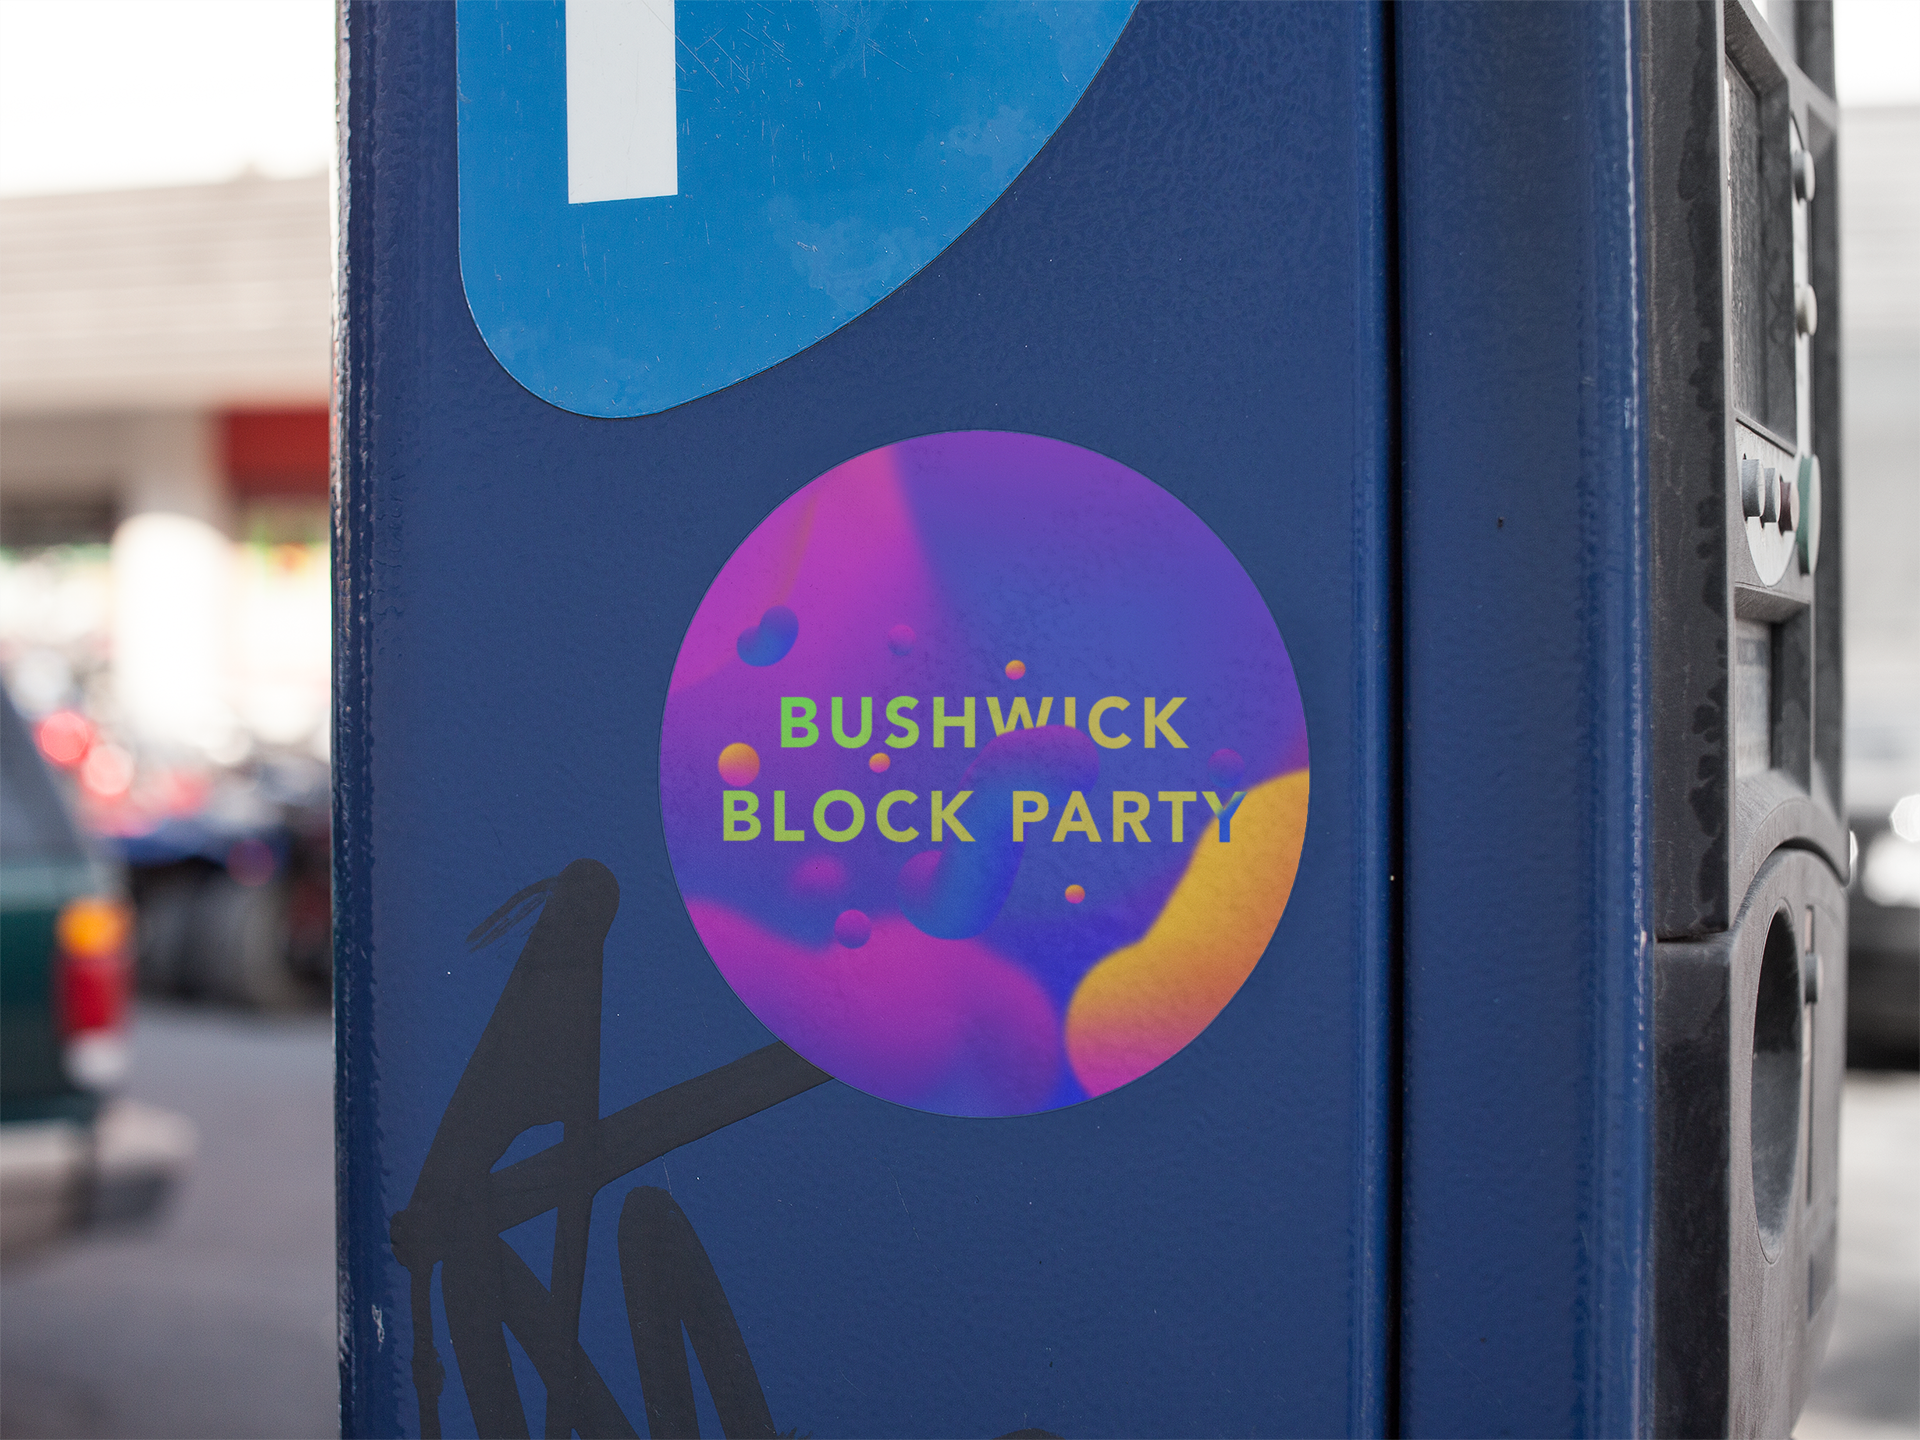 round-sticker-on-a-blue-parking-meter-mockup-a14341